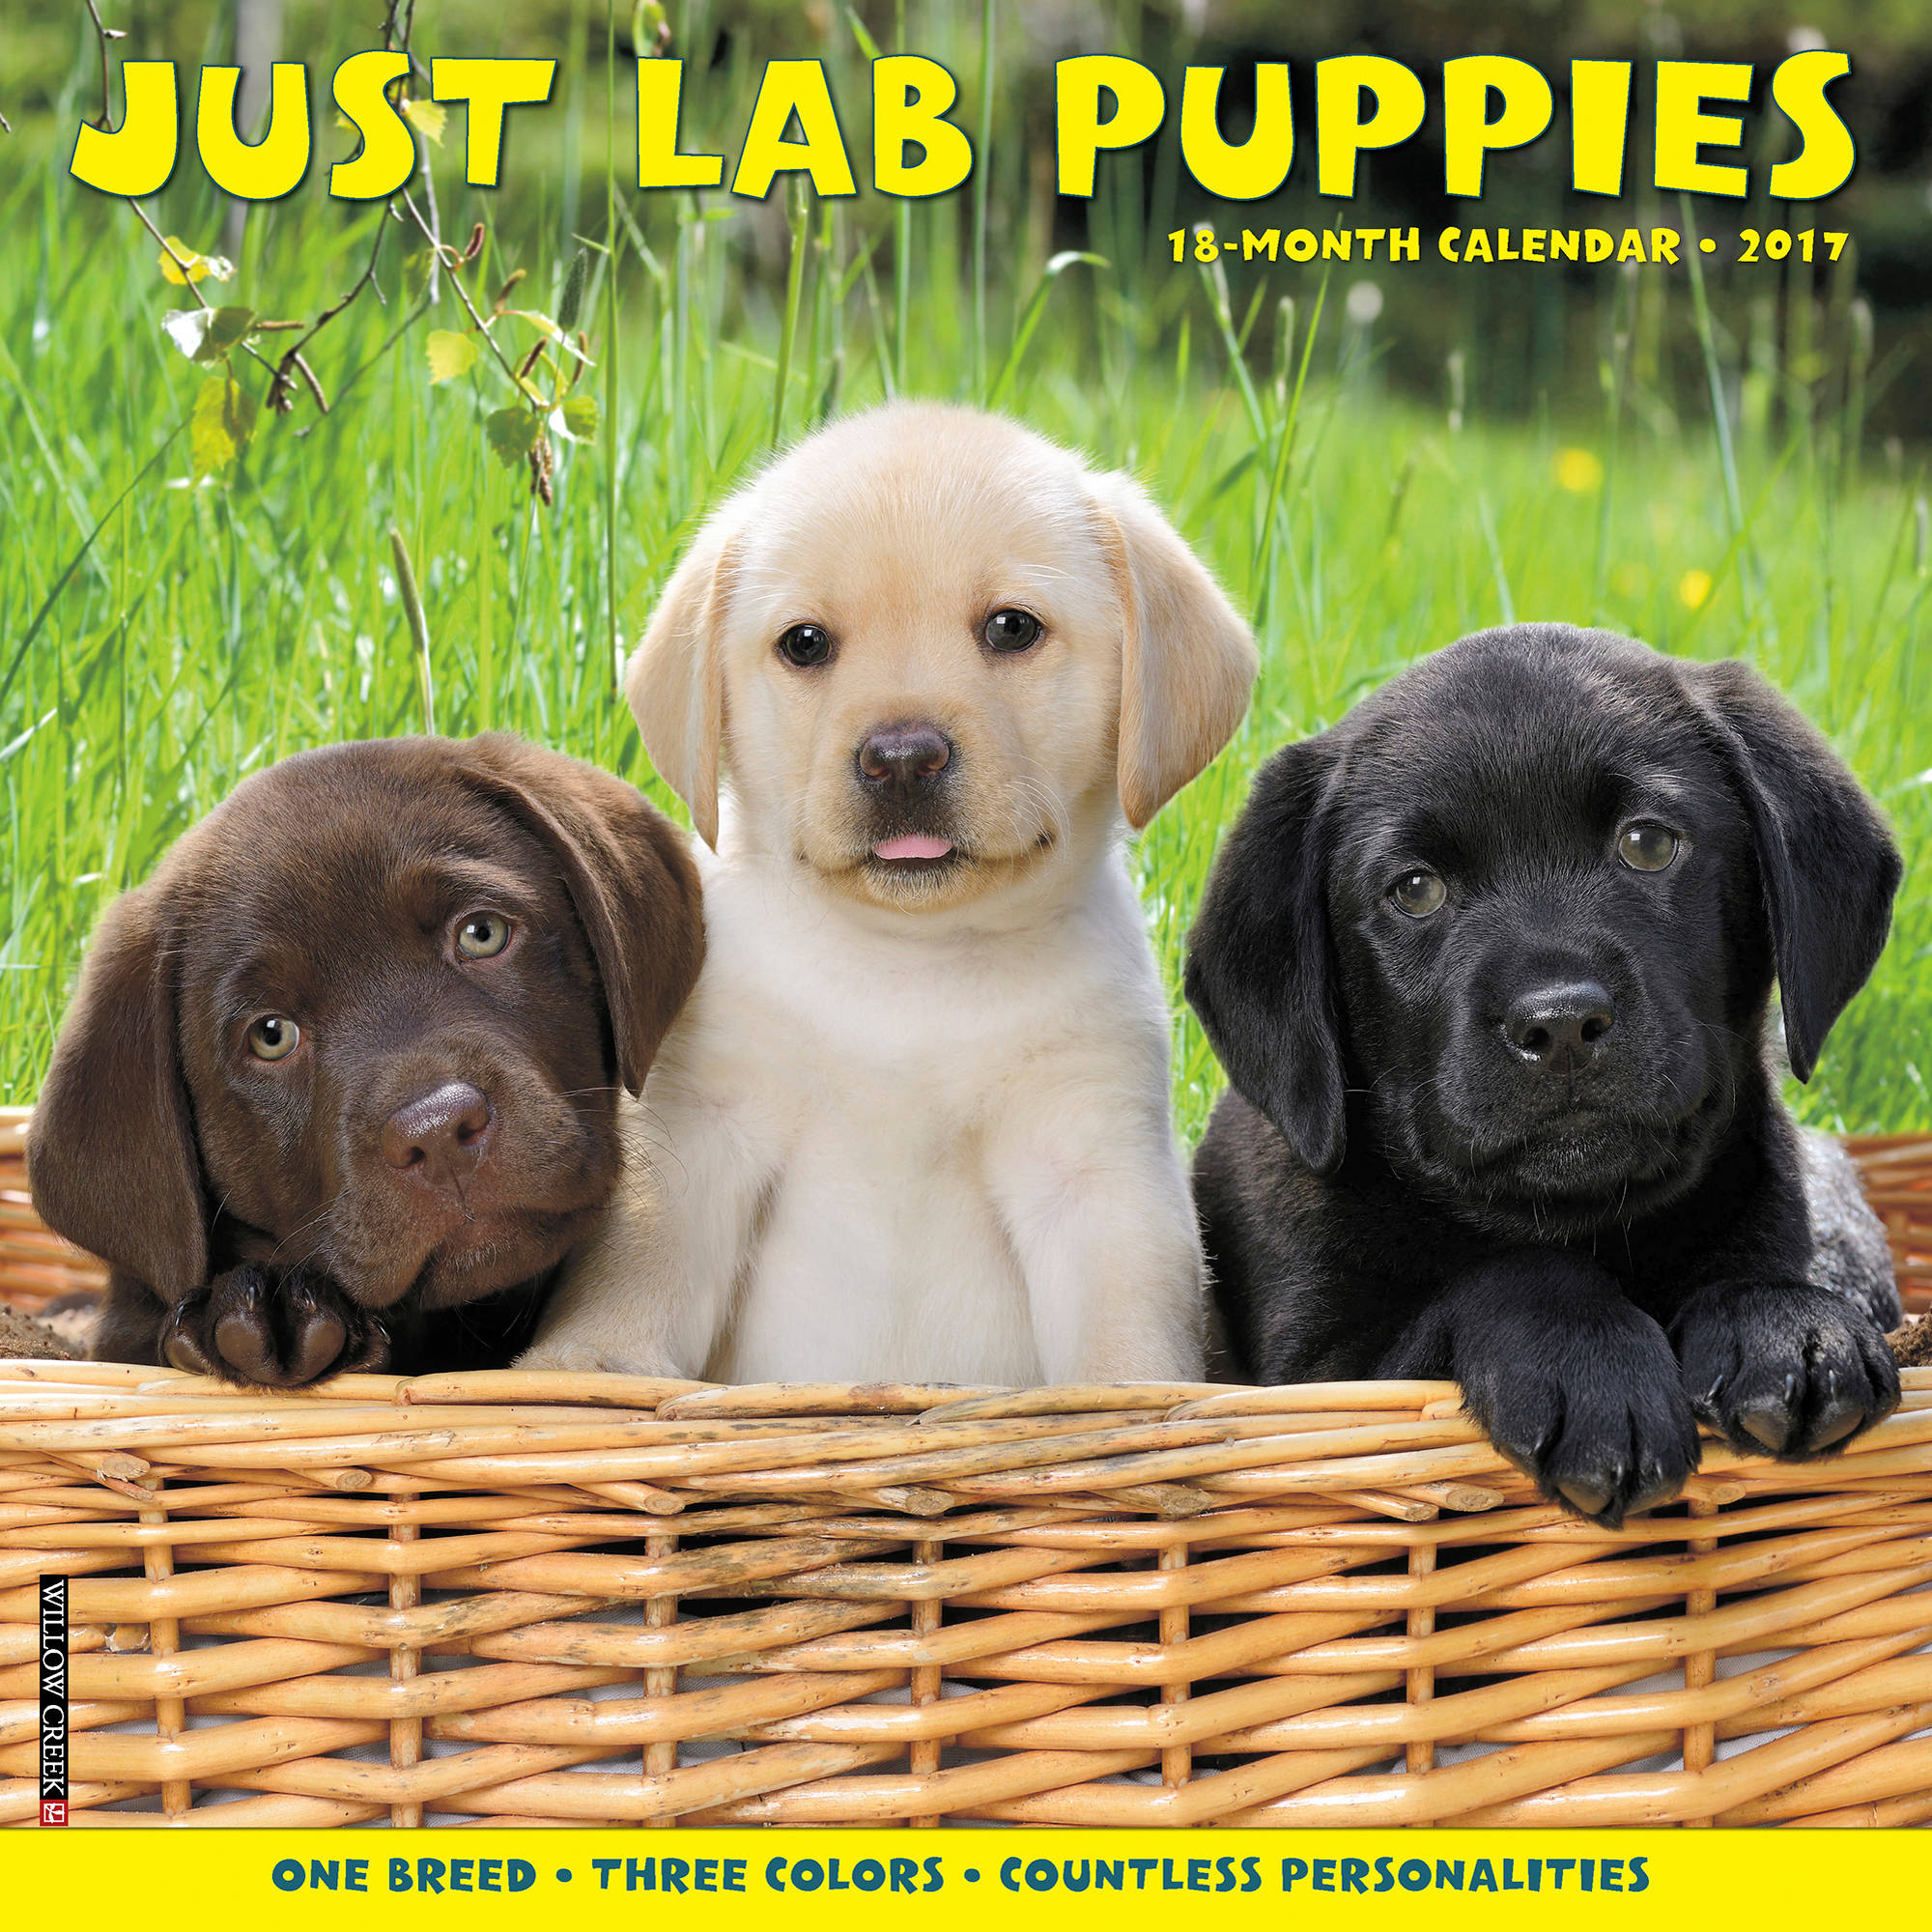 2017 Just Lab Puppies Wall Calendar